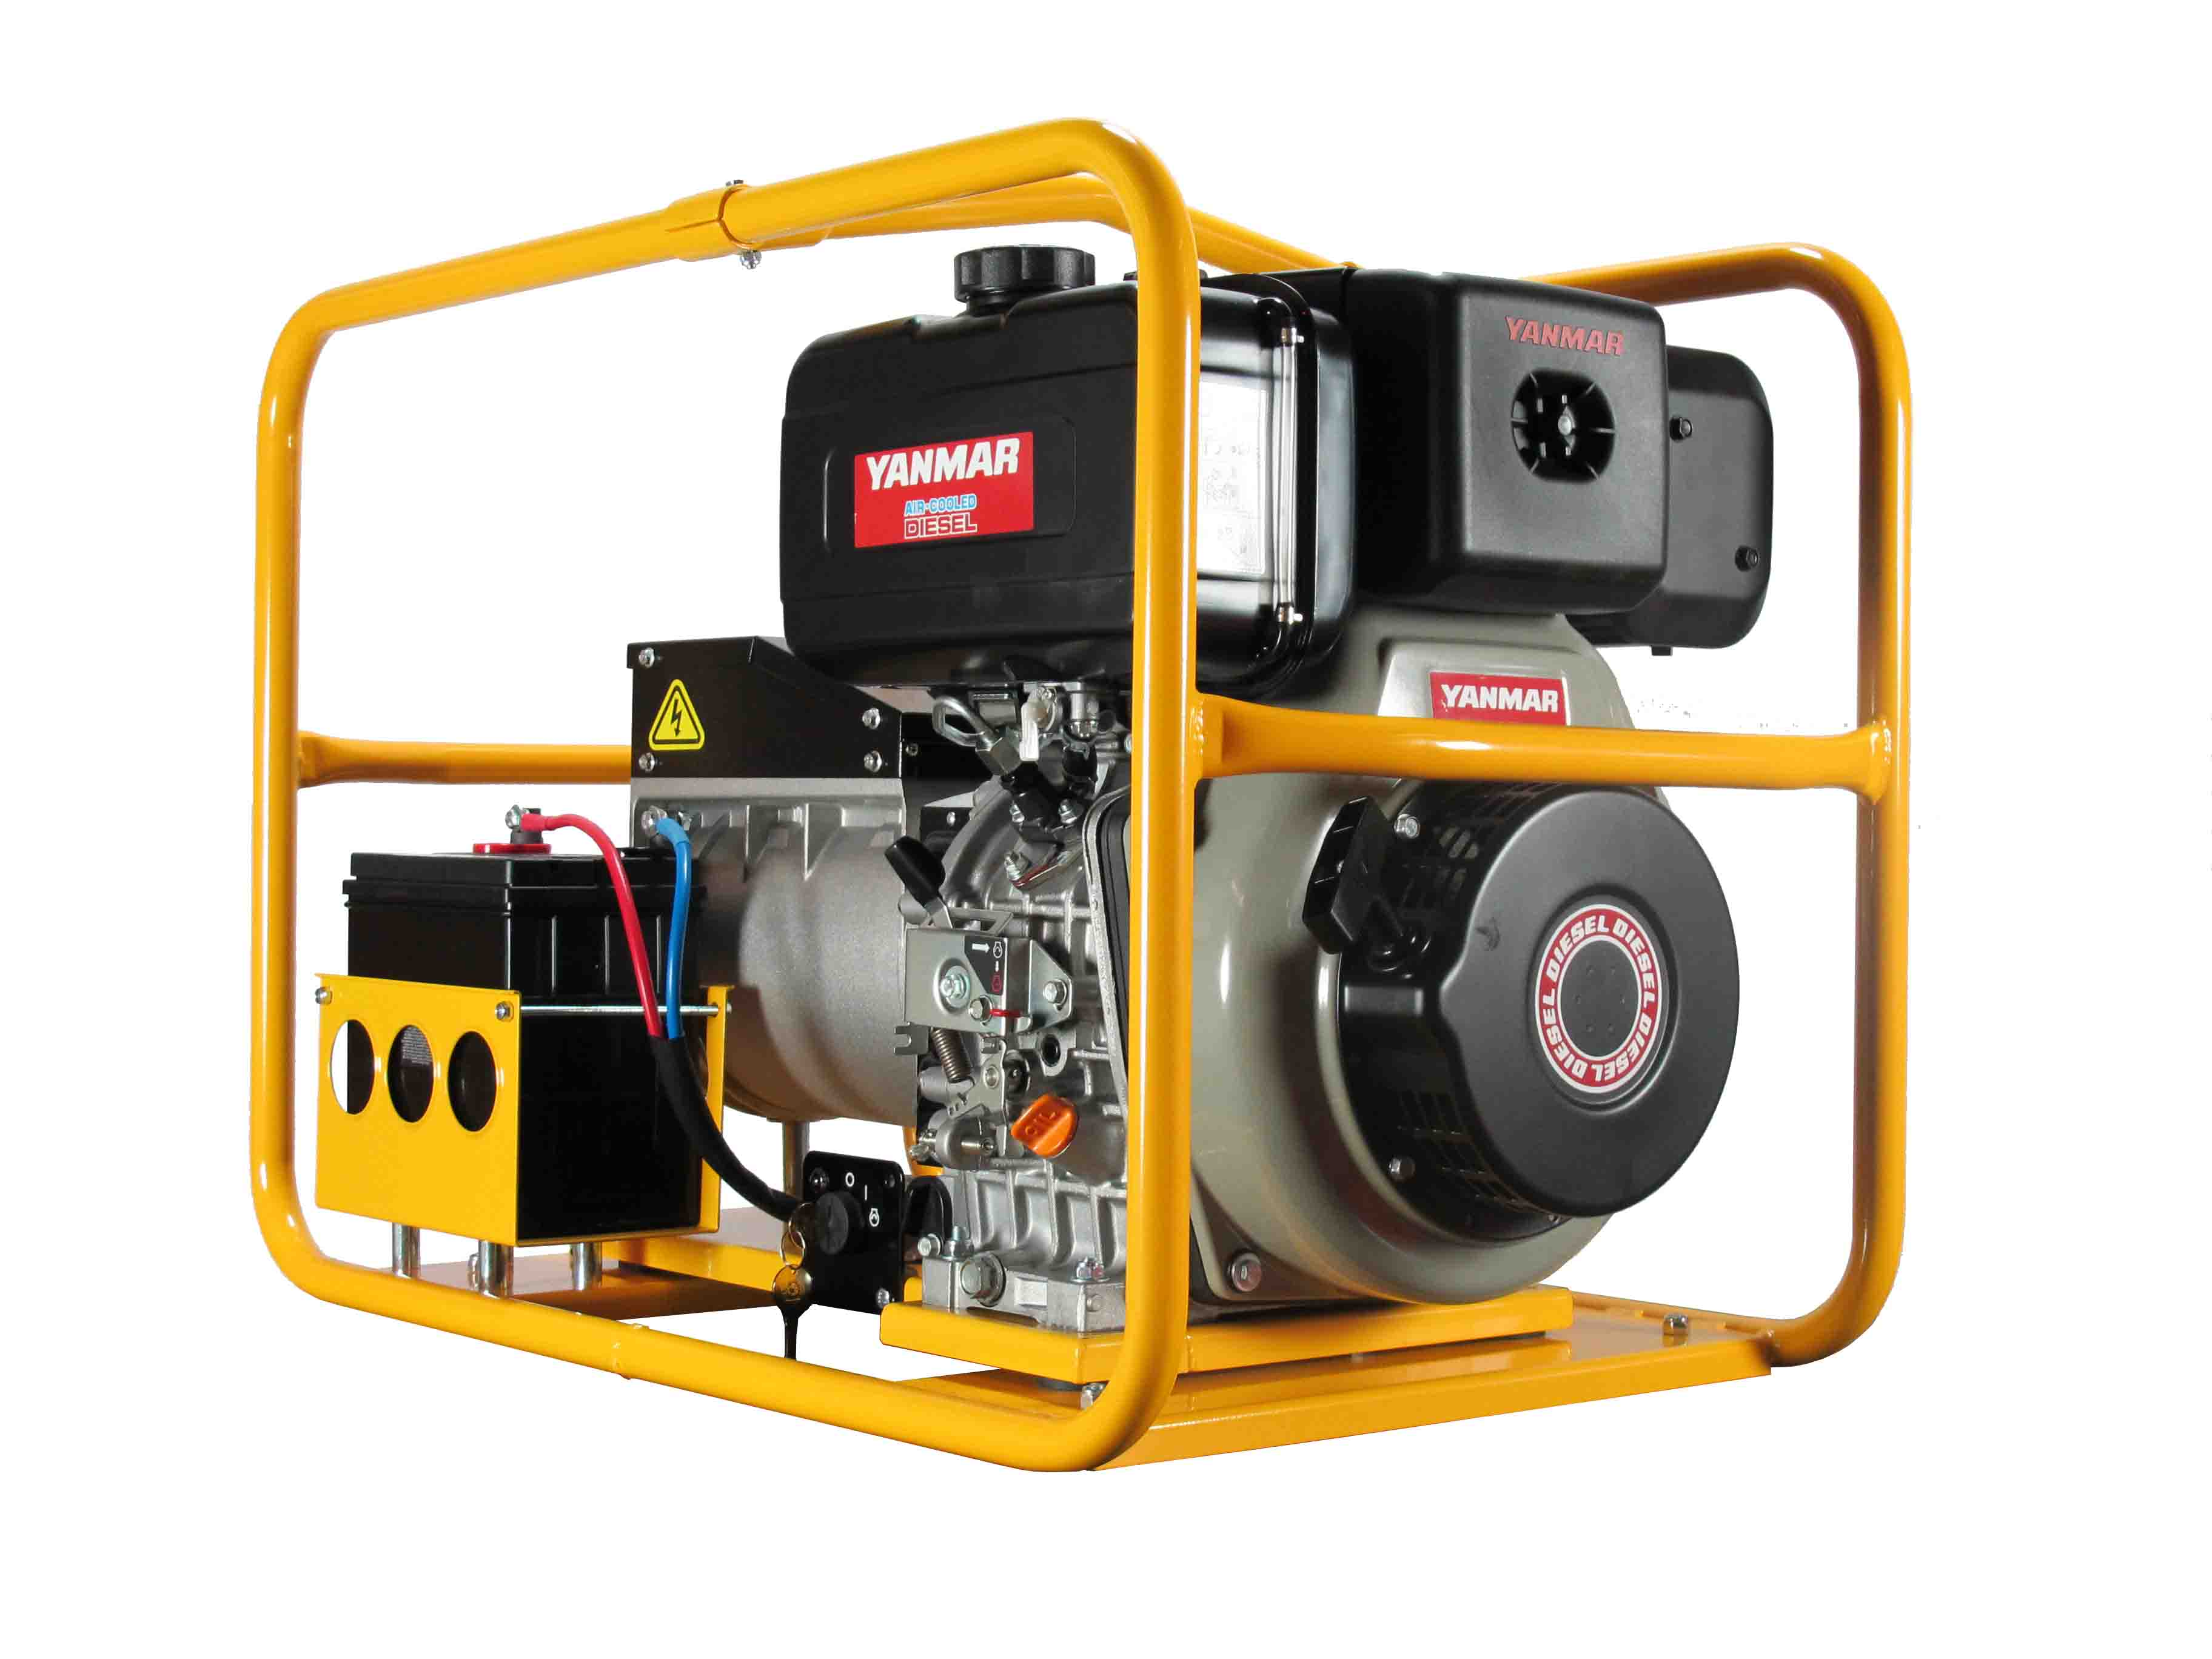 PYD070E – 6 000W Generator with battery